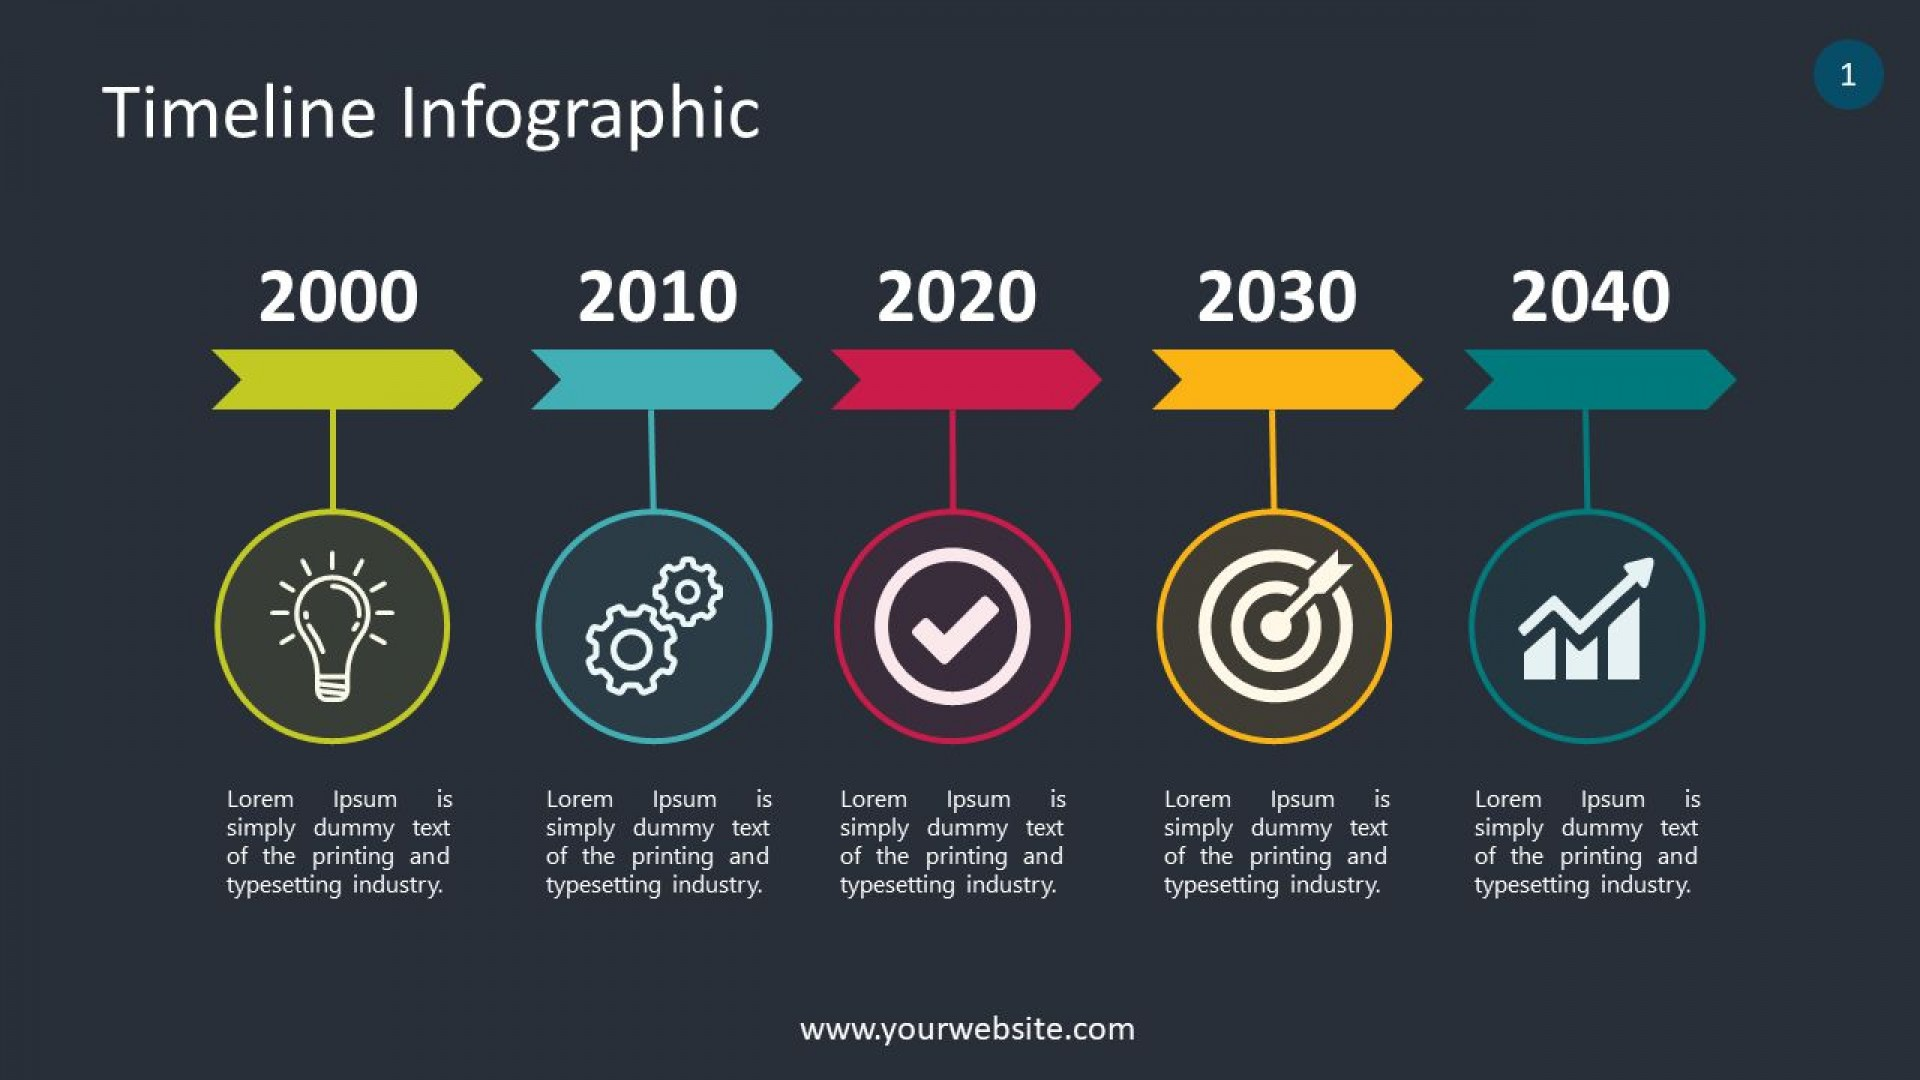 007 Shocking Timeline Infographic Template Powerpoint Download Image  Free1920